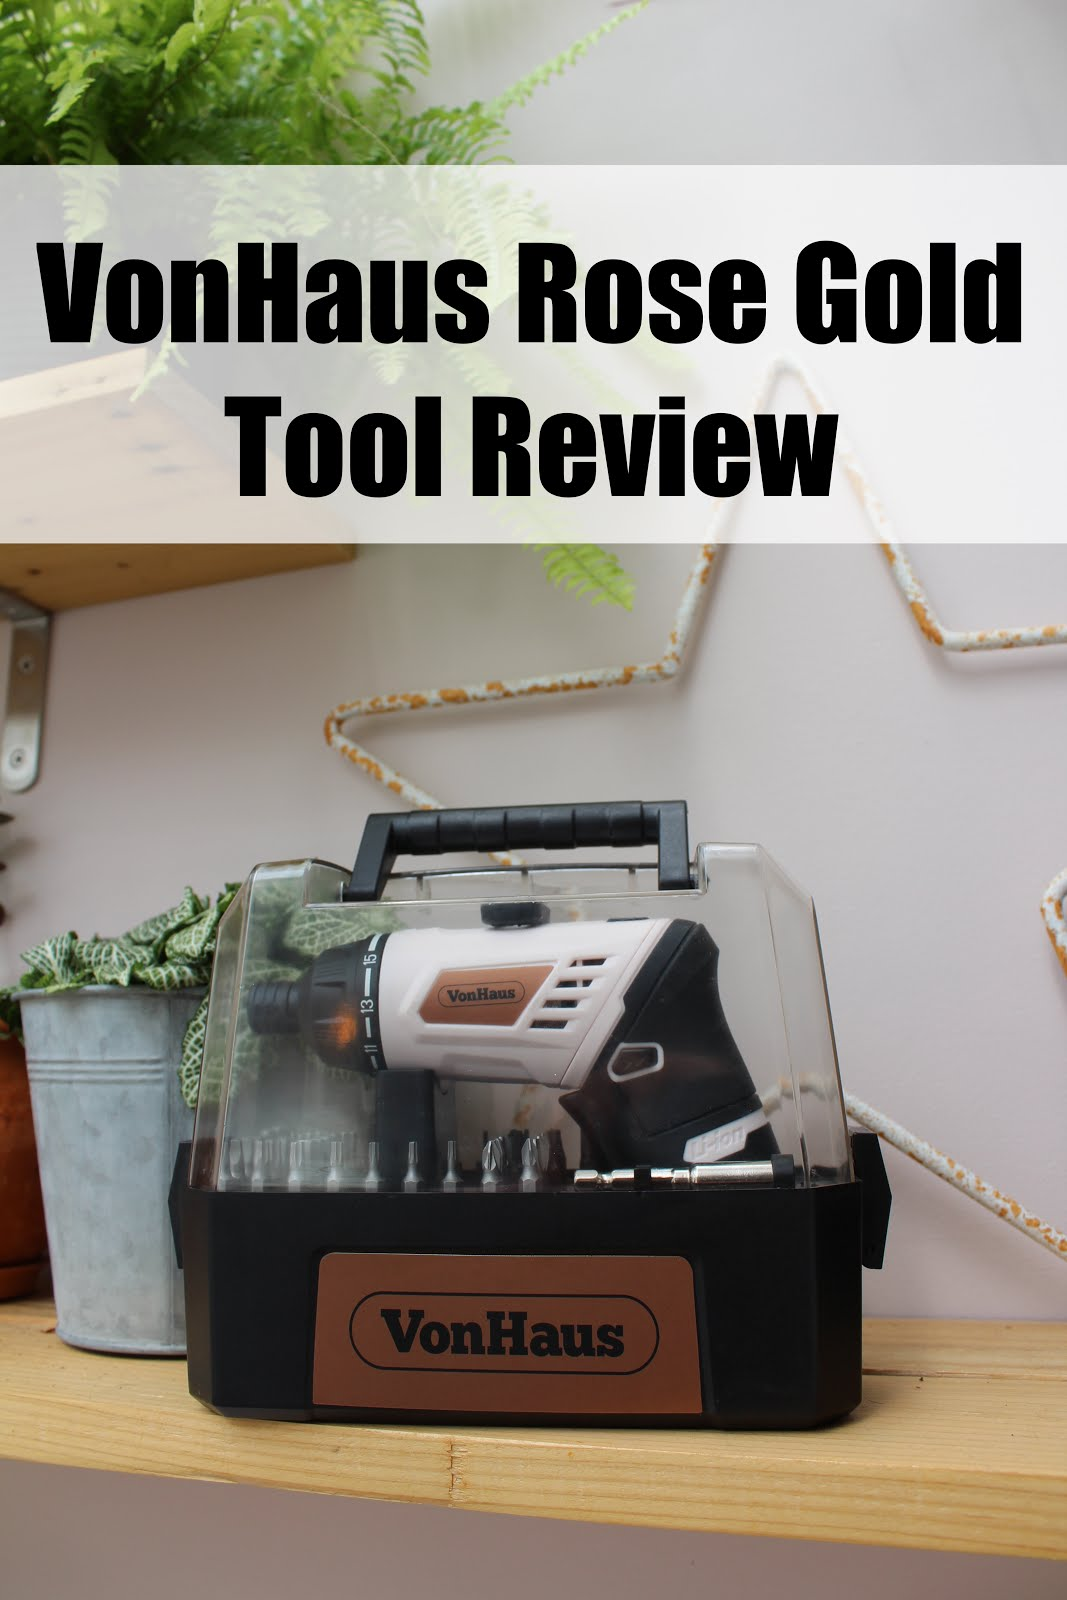 VonHaus Rose Gold Cordless Screwdriver Review